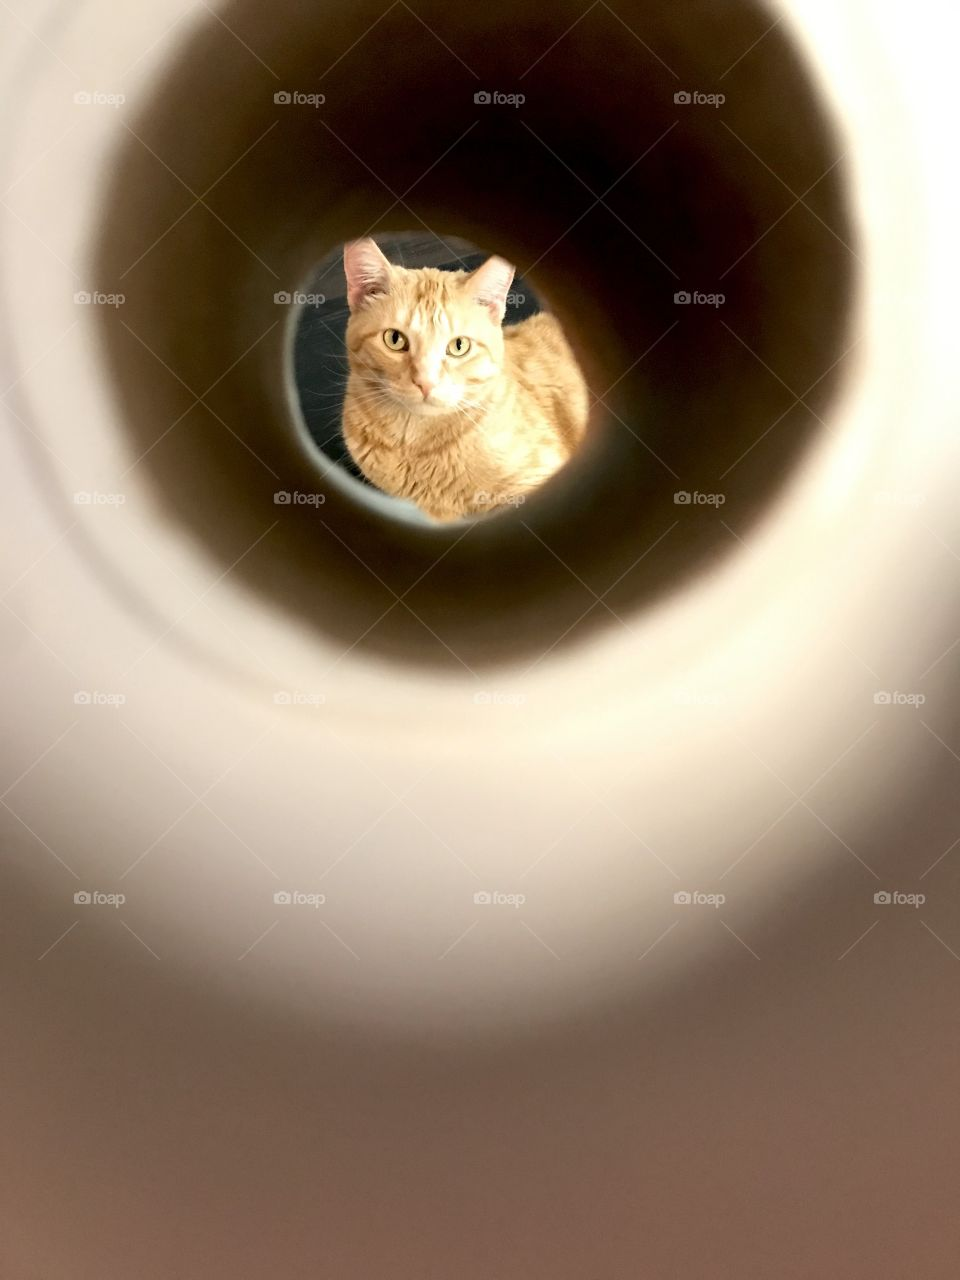 Darling orange tabby kitty cat looking straight through tube right at the camera.